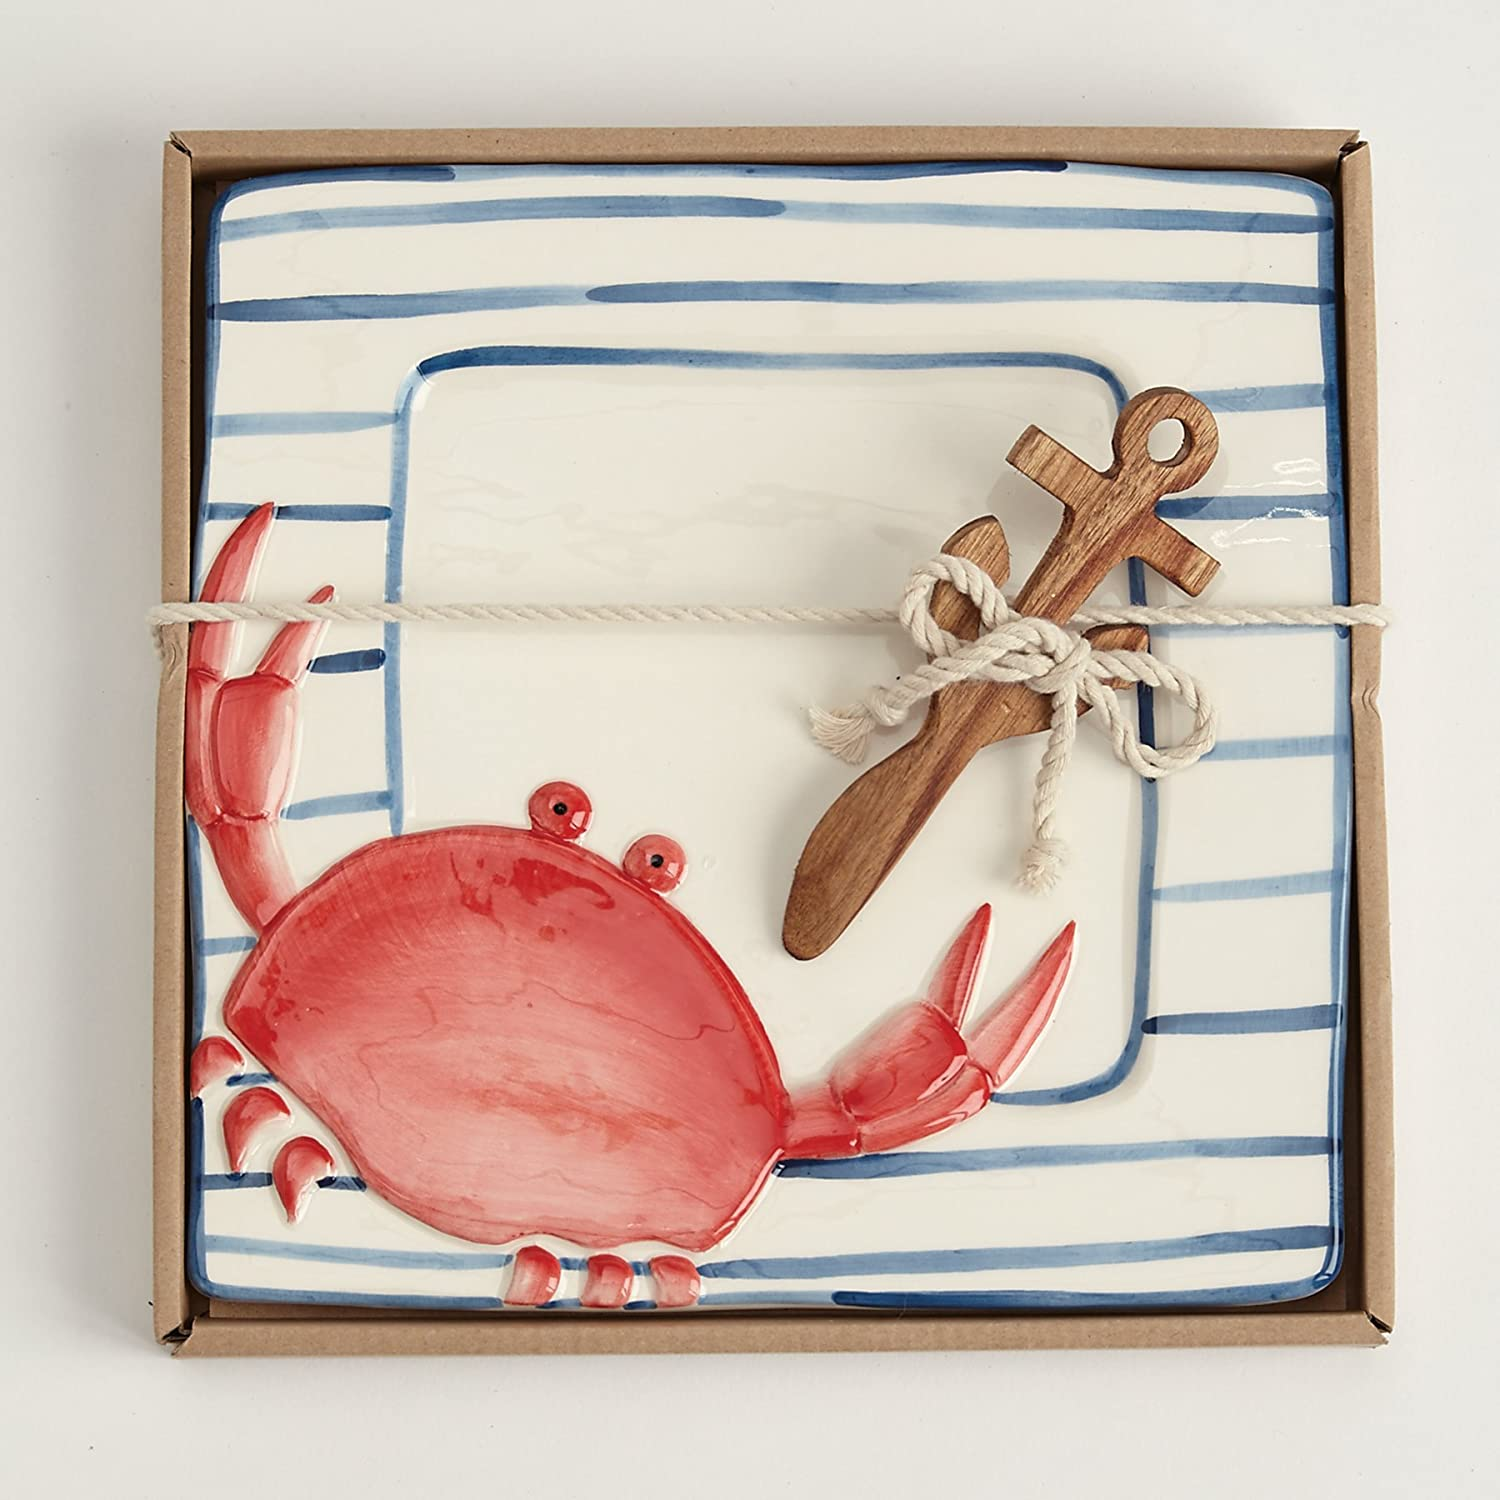 Christmas Tablescape Décor - Mud Pie hand-painted red crab ceramic cheese plate serving set with wooden carved anchor handle spreader